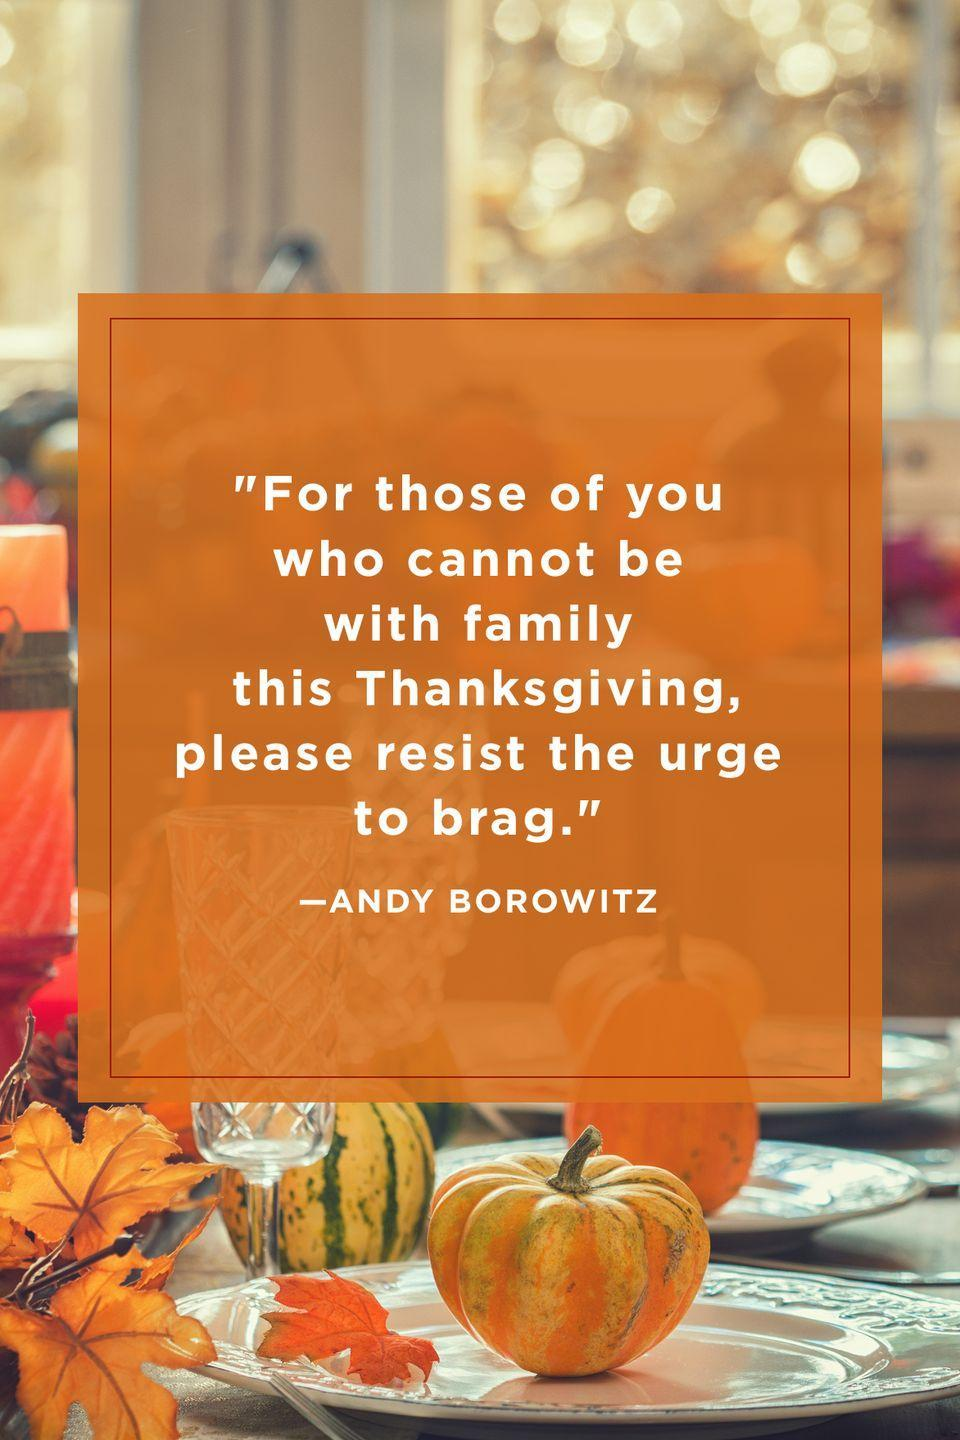 "<p>""For those of you who cannot be with family this Thanksgiving, please resist the urge to brag.""</p>"